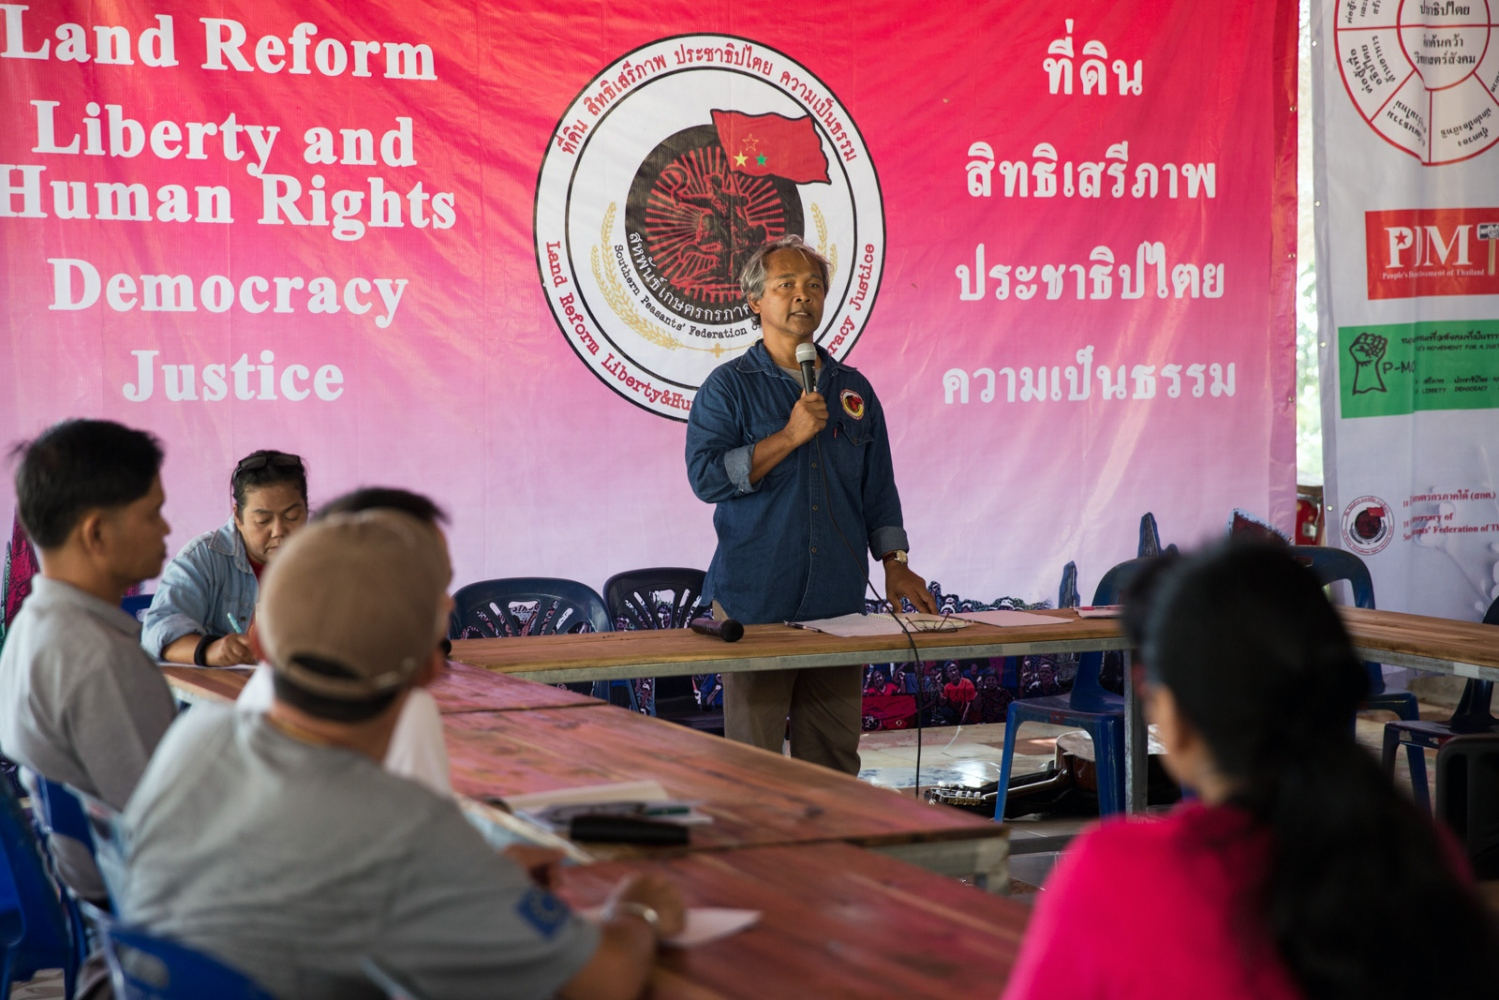 Pi Kaew, the leader of the Southern Peasant's Federation of Thailand (SPFT), leads a discussion forum during the 10 year anniversary celebration in Klong Sai Pattana whereby experts on human rights in Thailand and members of other Thai organisations talked and debated. December 2018.